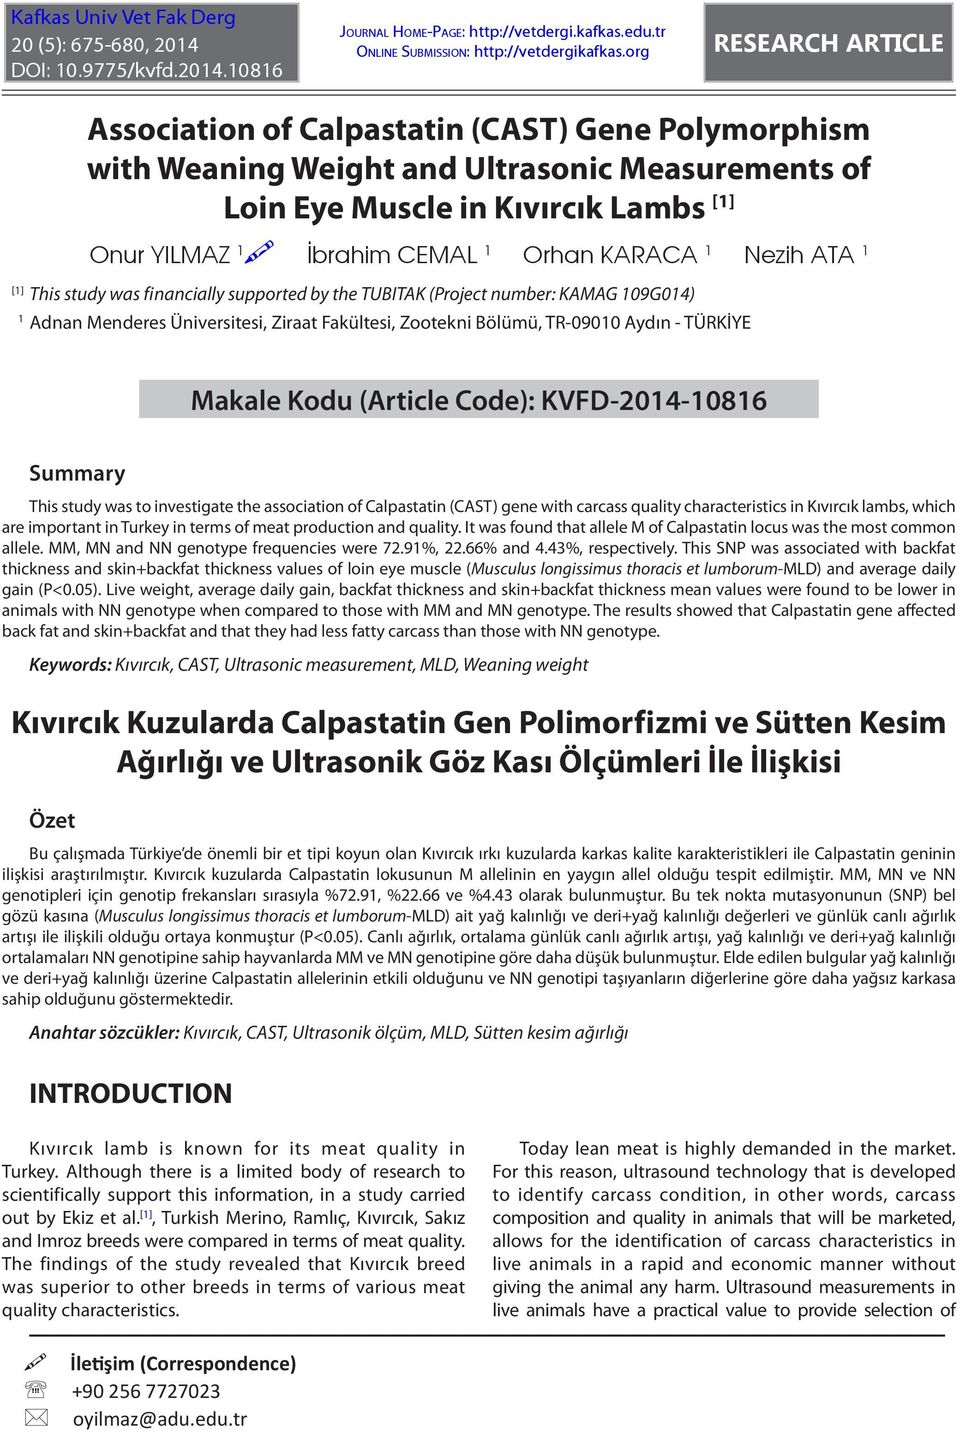 Orhan KARACA 1 Nezih ATA 1 This study was financially supported by the TUBITAK (Project number: KAMAG 109G014) Adnan Menderes Üniversitesi, Ziraat Fakültesi, Zootekni Bölümü, TR-09010 Aydın - TÜRKİYE